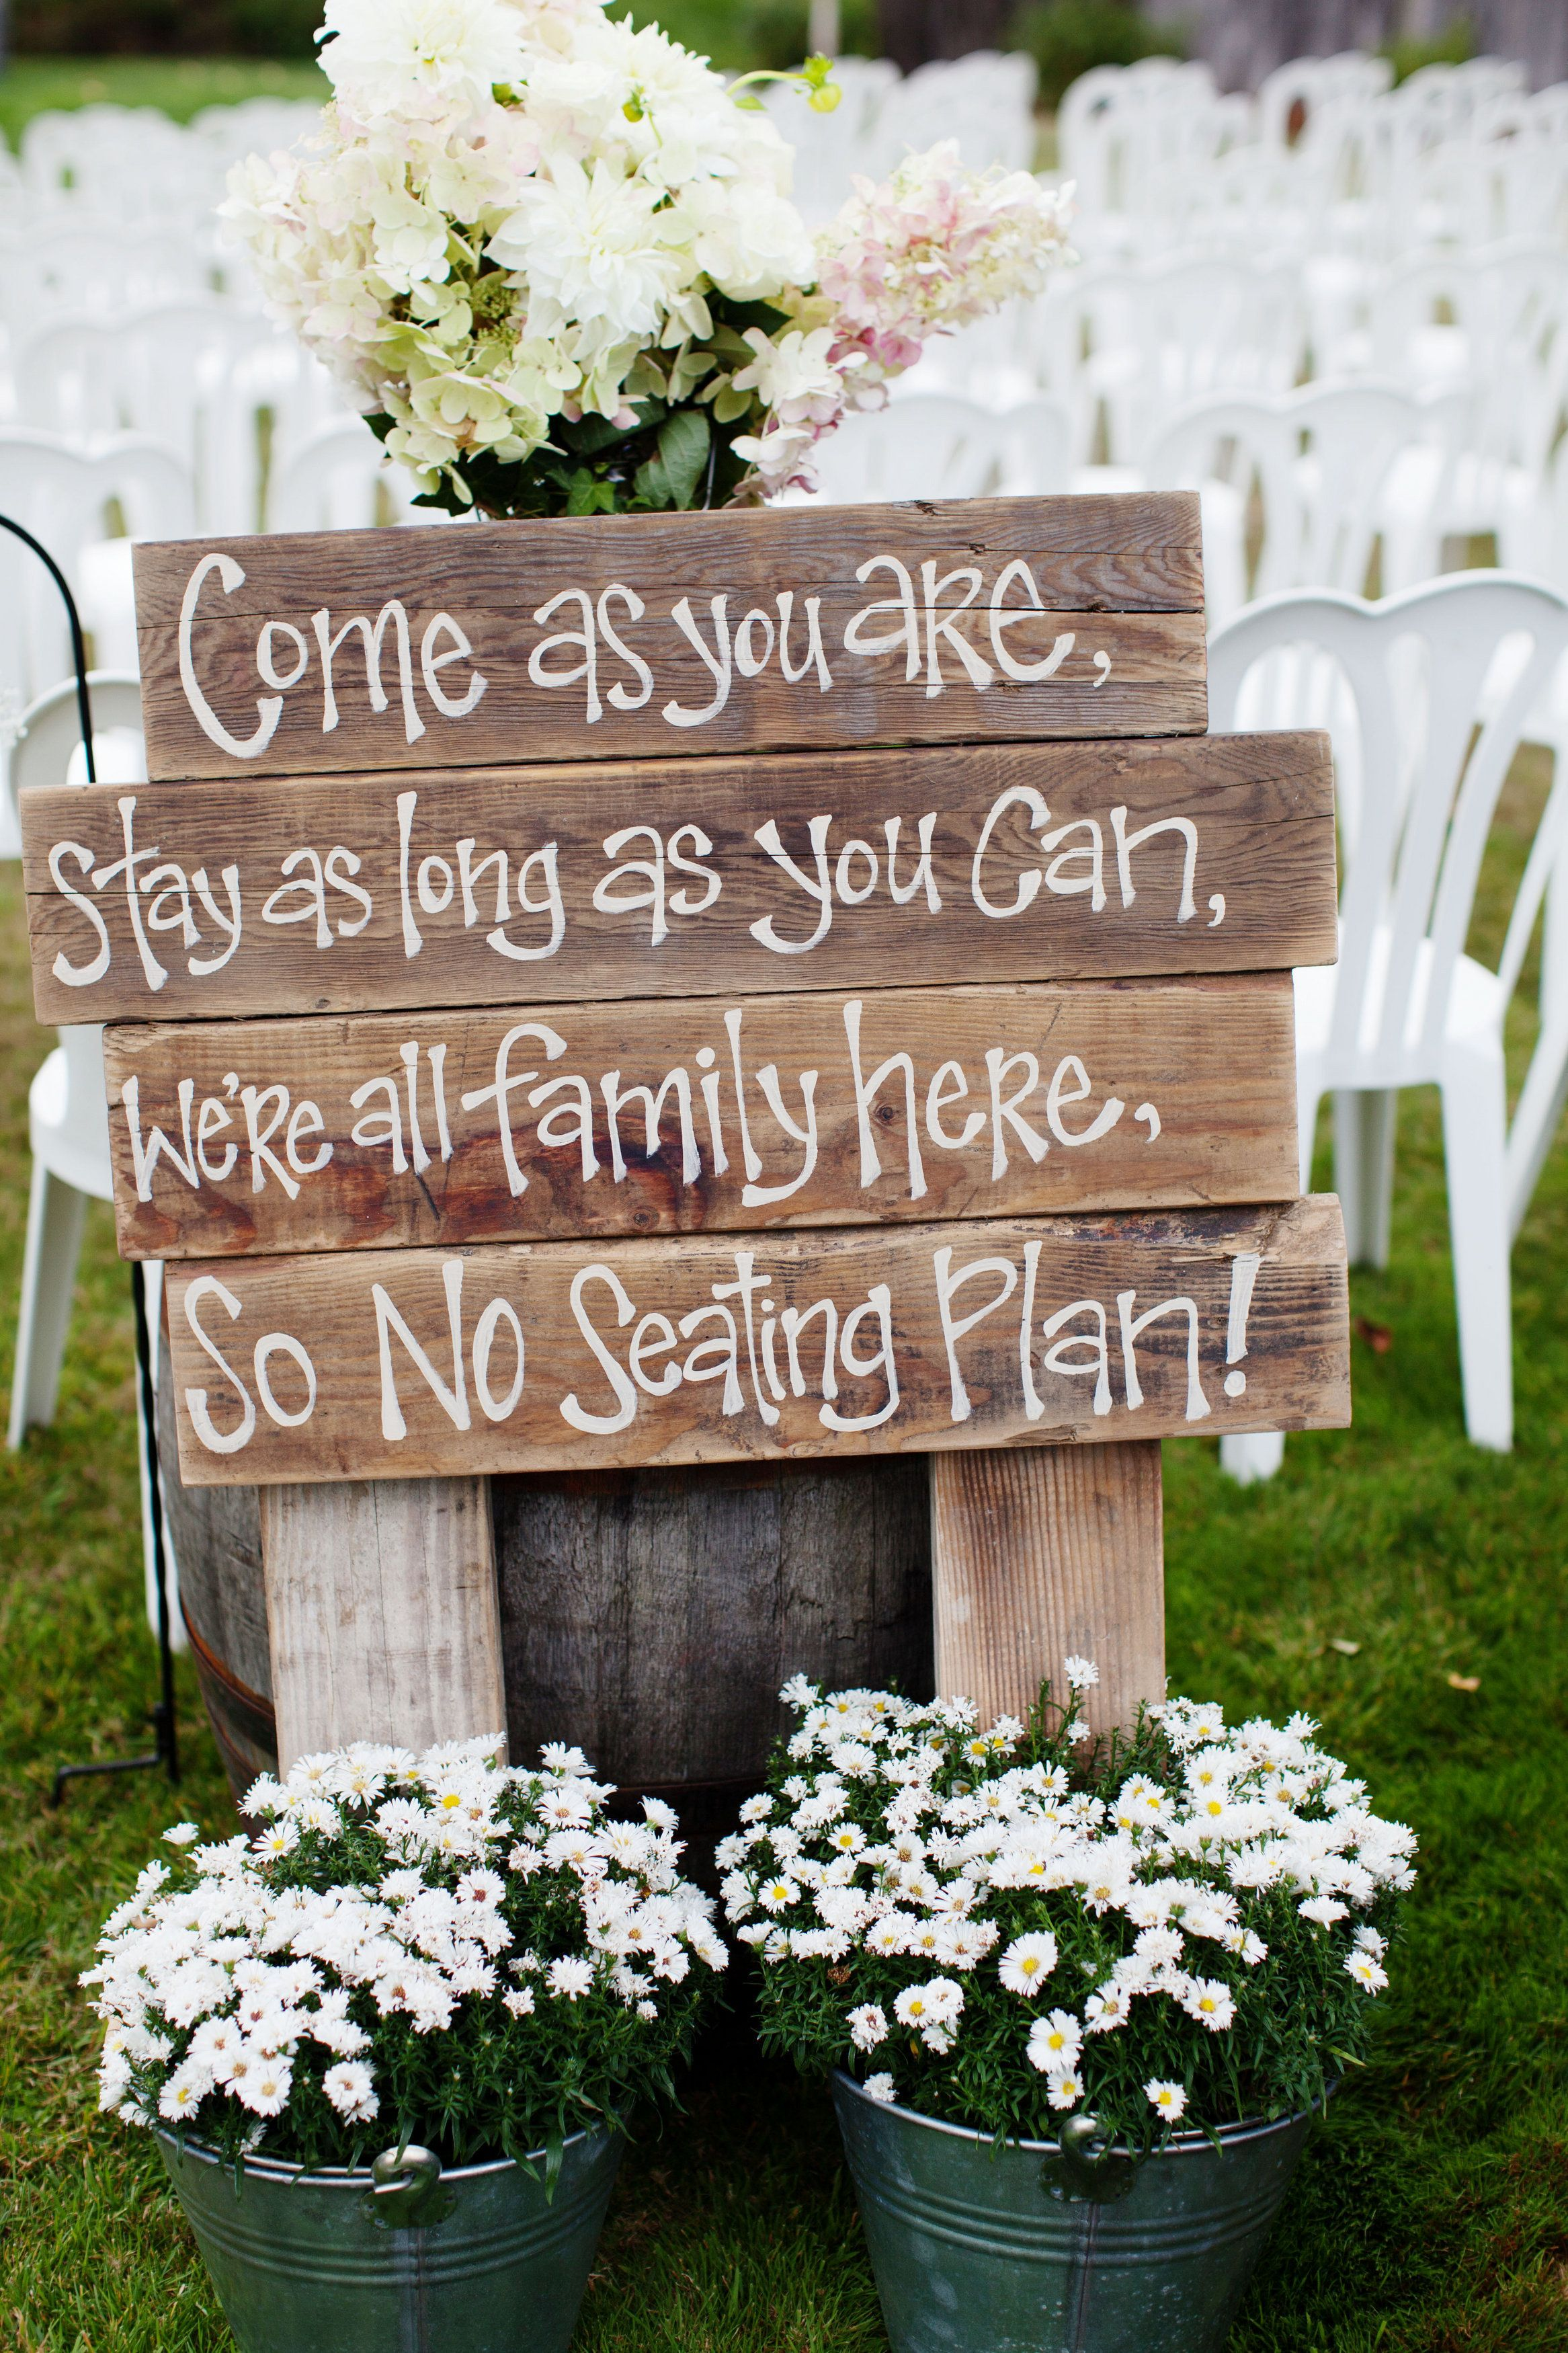 Rustic wedding ceremony sign {Photo by Anne Nunn via Project Wedding}